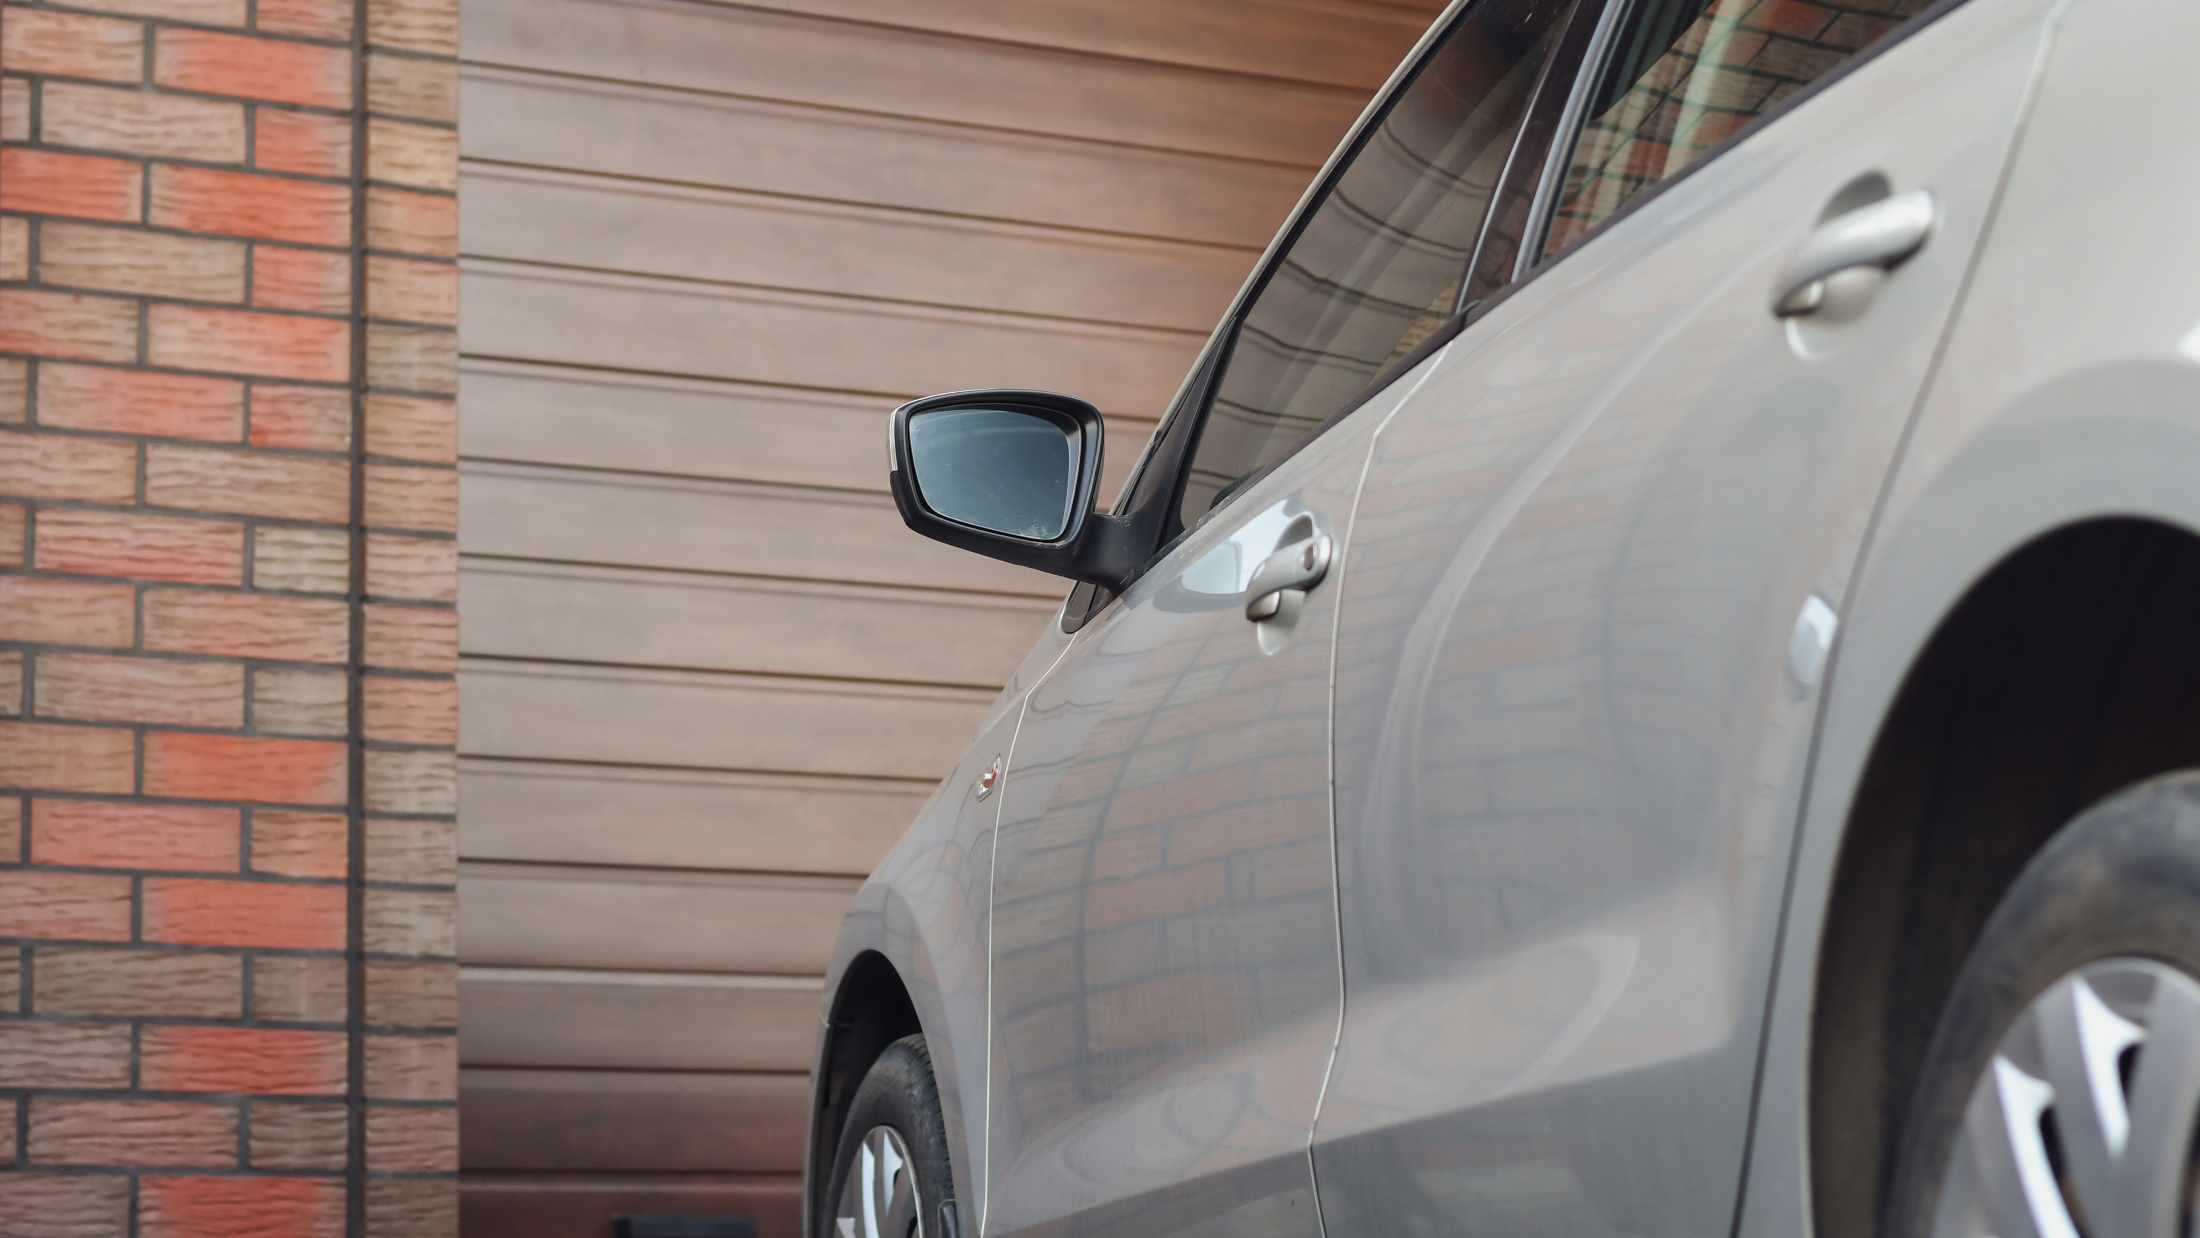 Silver car parked on driveway in front of garage with brown door